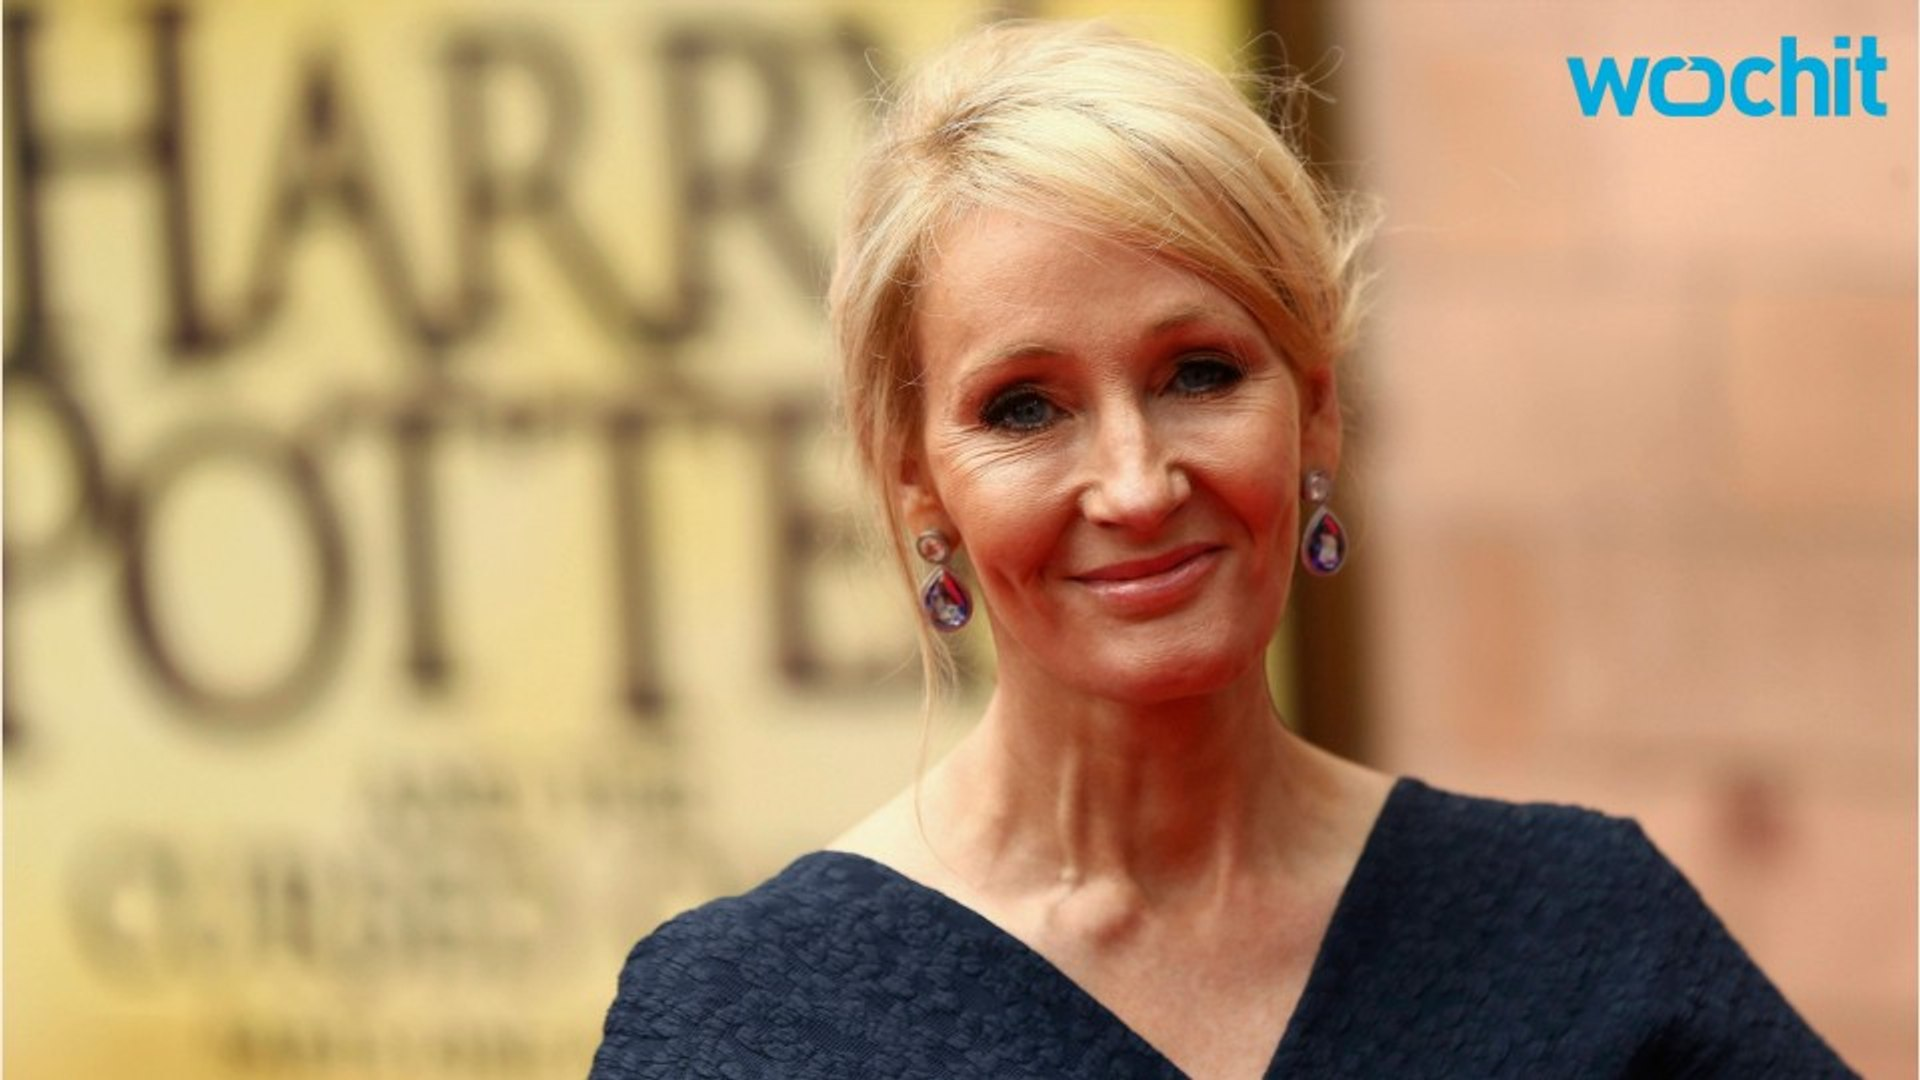 JK Rowling's Latest 'Potter' Book Flying Off Shelves